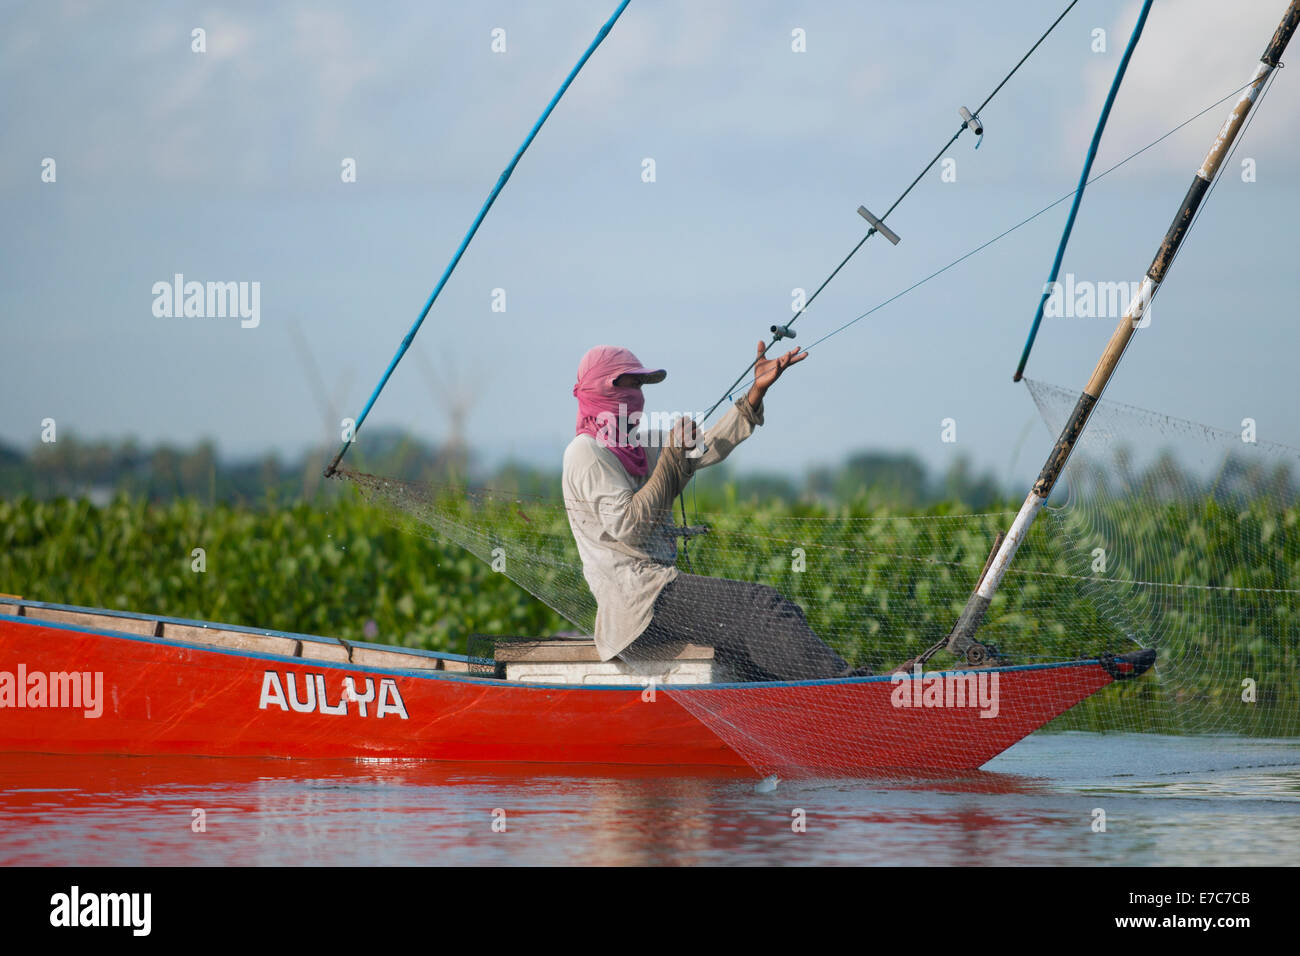 Fishing on the Tempe lake in Sulawesi, Indonesia Stock Photo